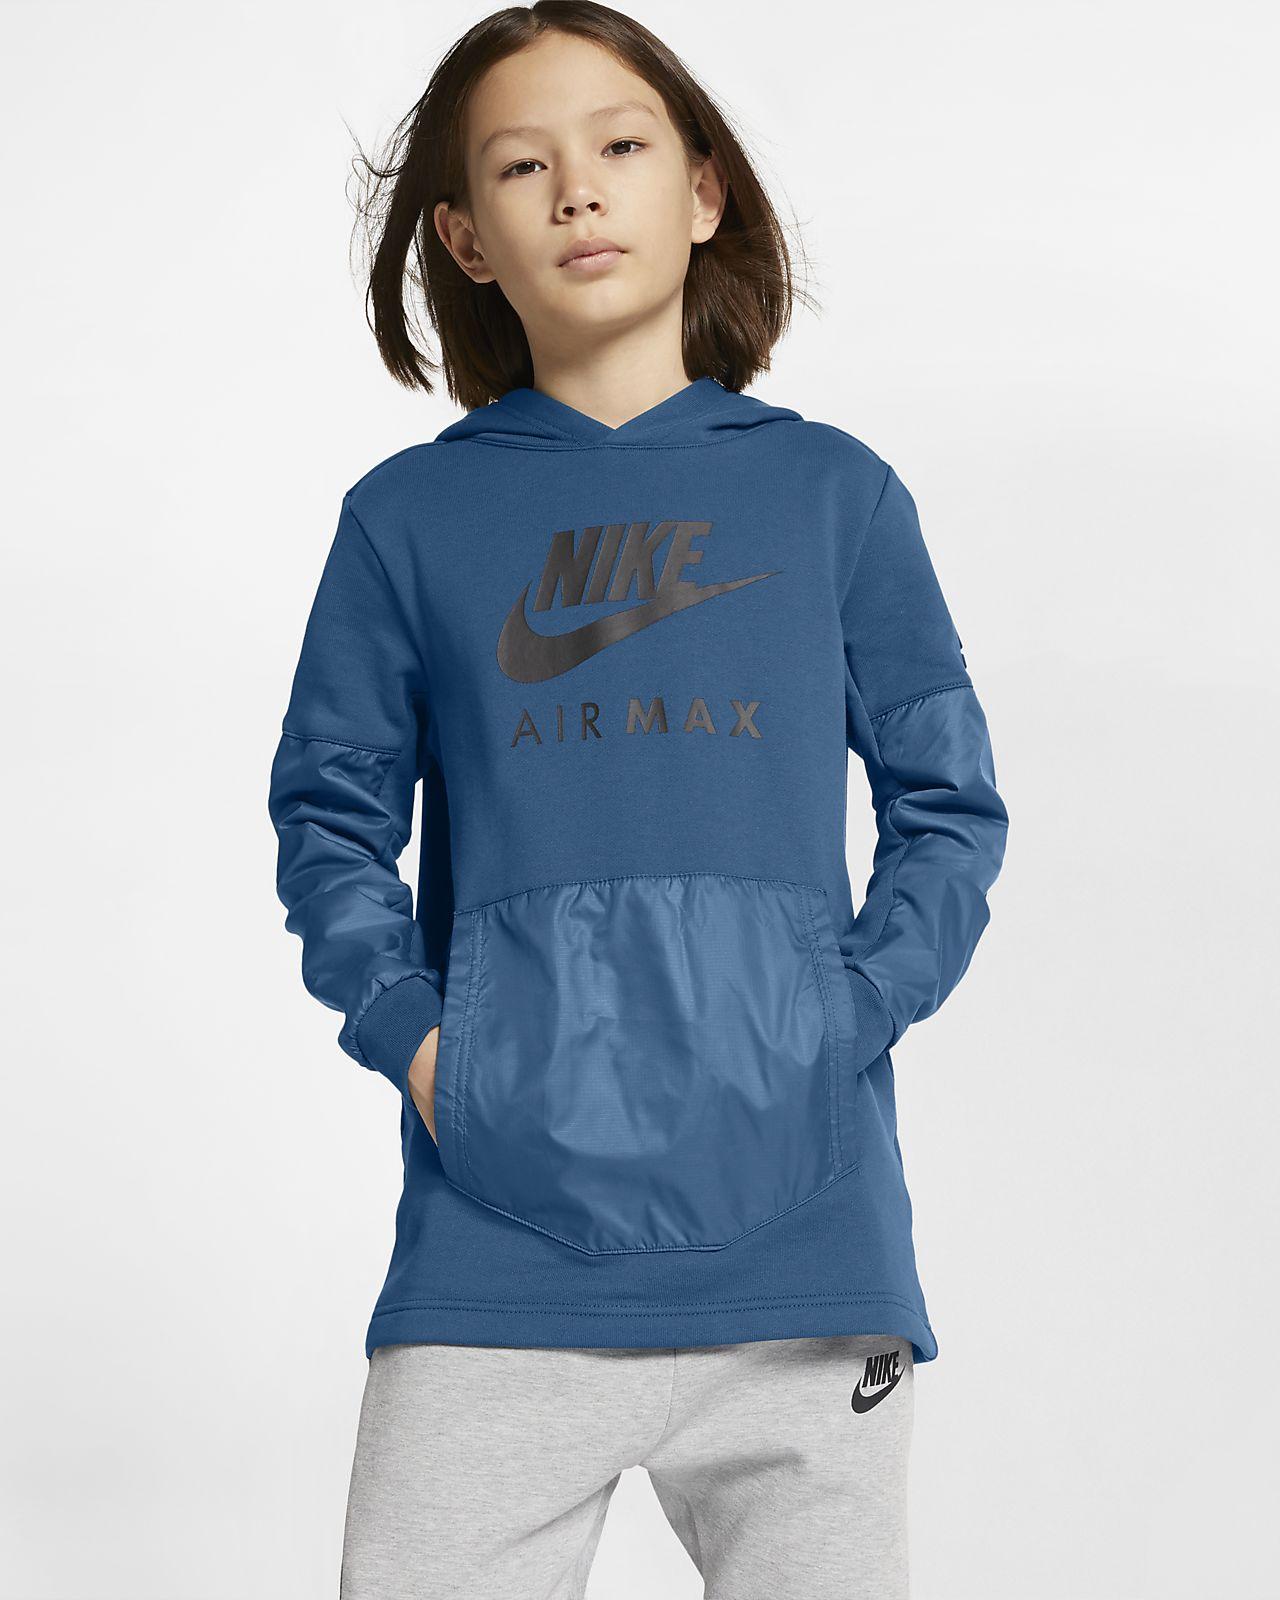 eee7434bf Nike Air Max Older Kids' (Boys') Pullover Hoodie. Nike.com GB